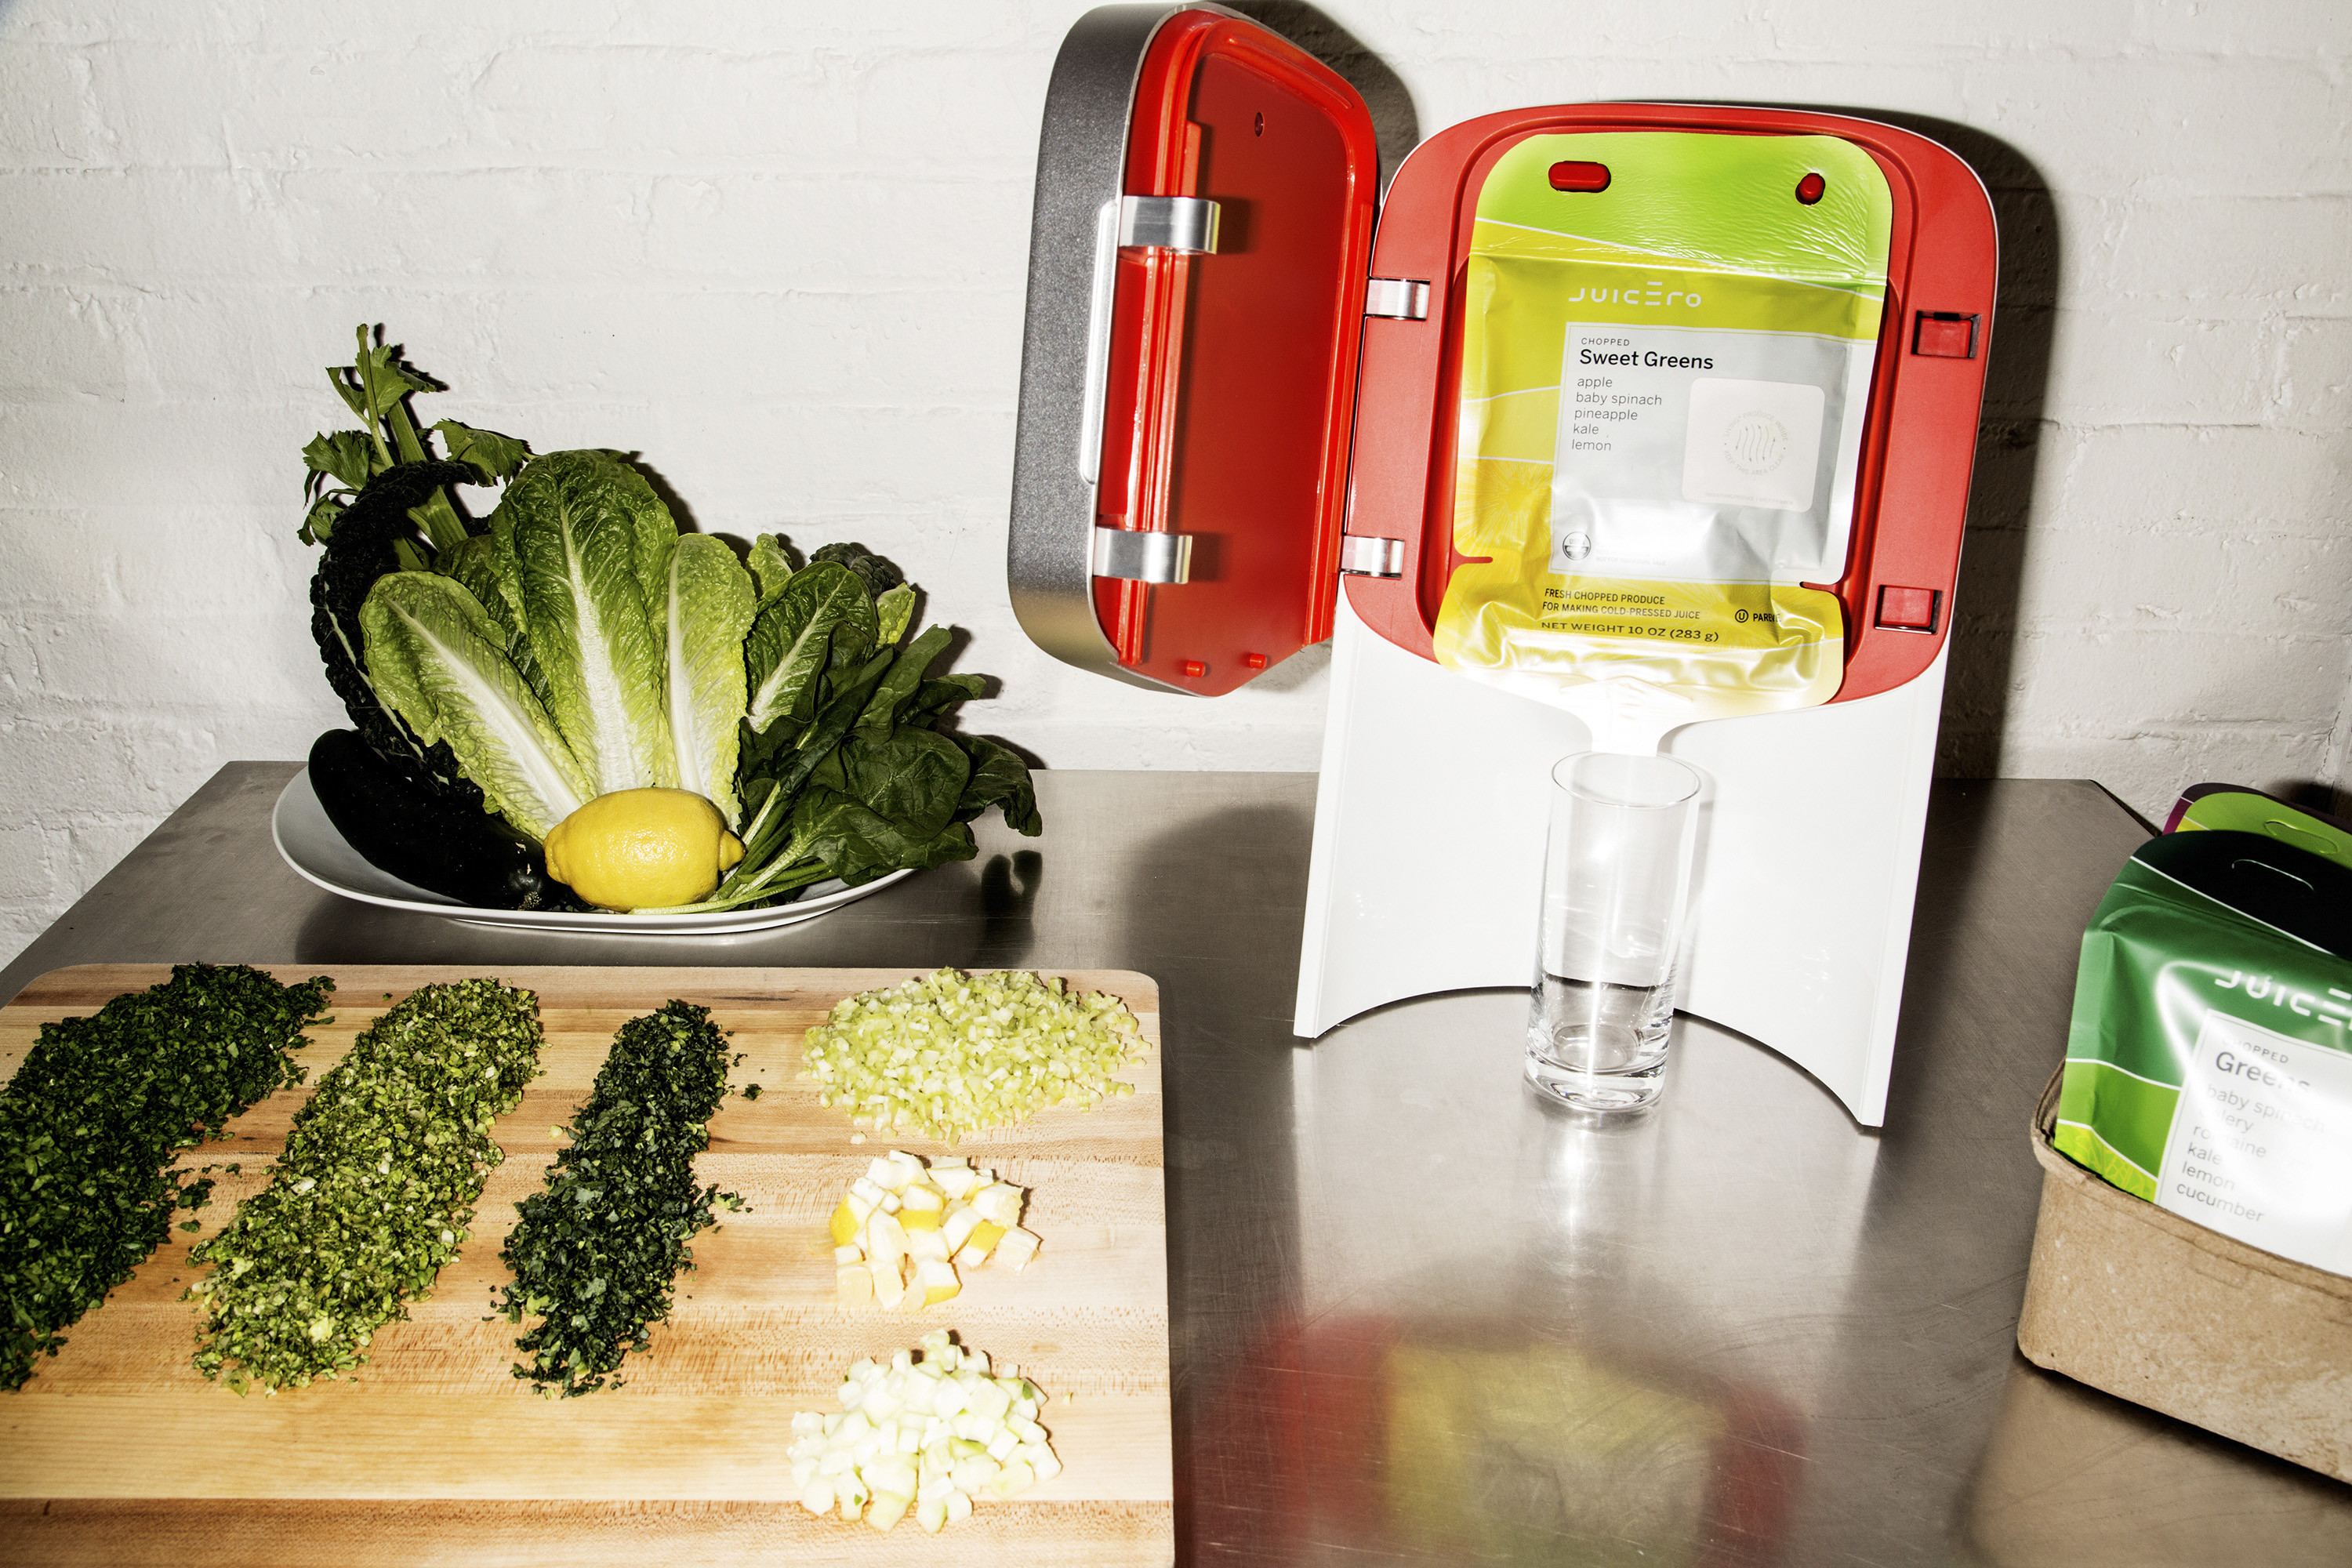 A machine that makes an eight-ounce glass of juice from Doug Evans company Juicero, in New York.